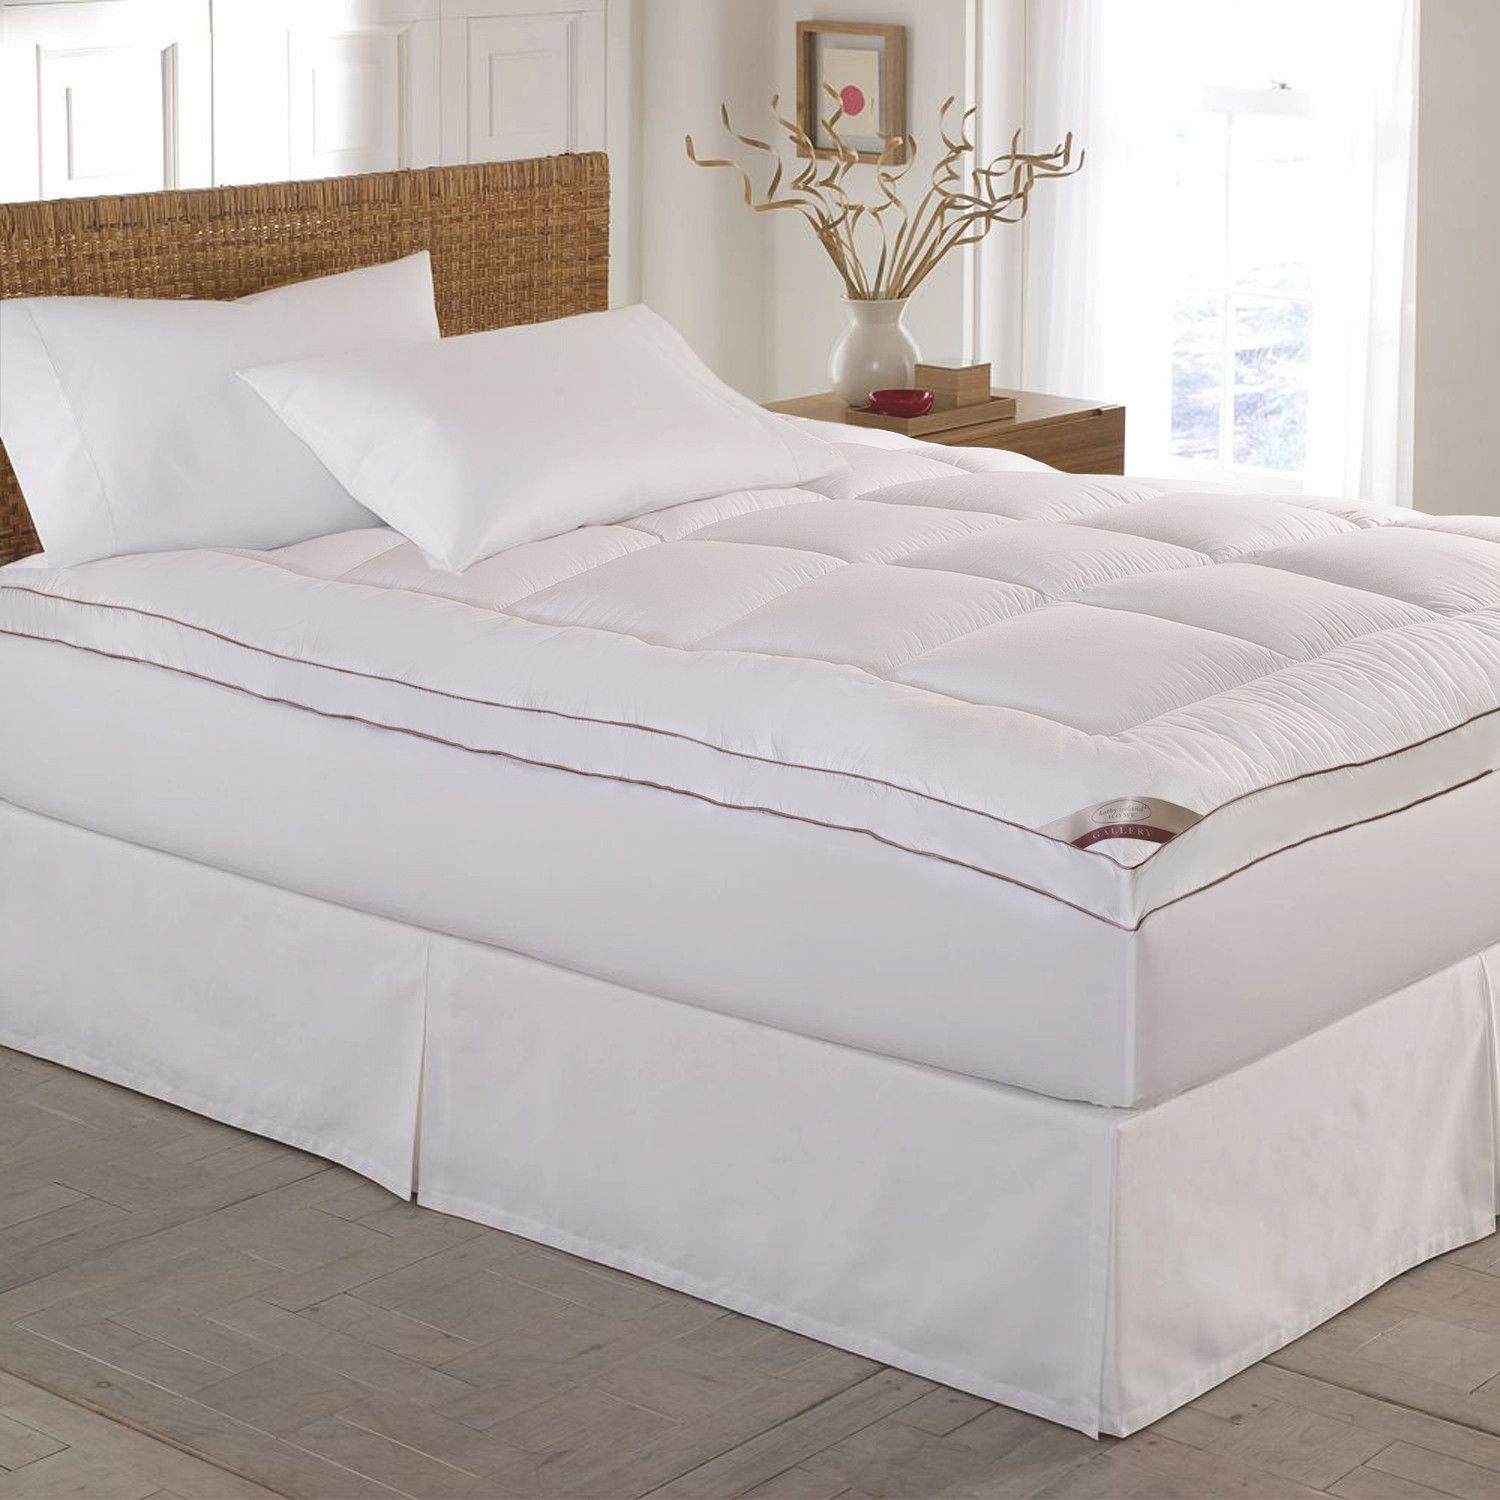 kathy ireland home gallery cotton gusseted feather bed kathy